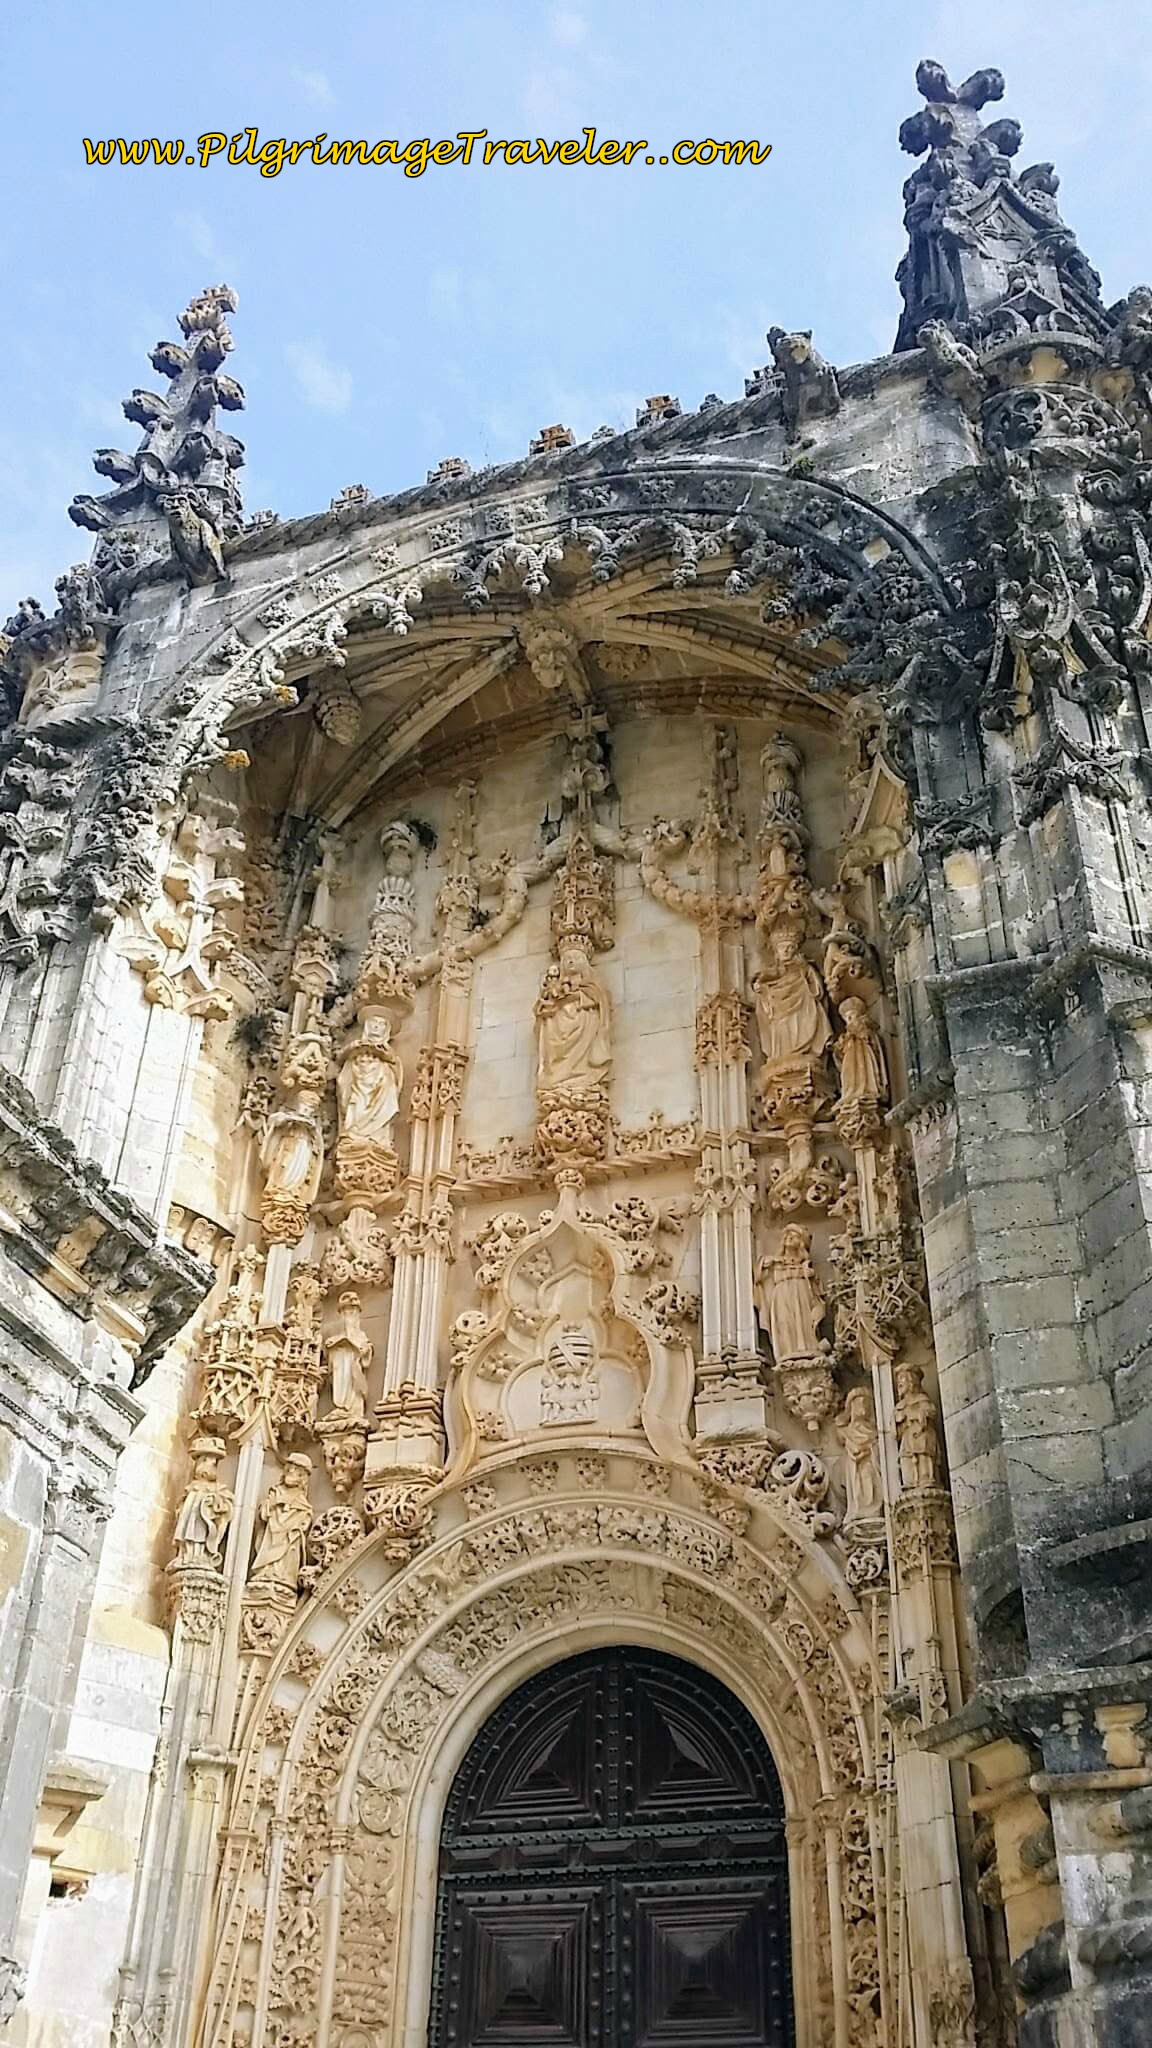 Manueline Embellishments on Main Entrance to the Convento de Cristo, Tomar